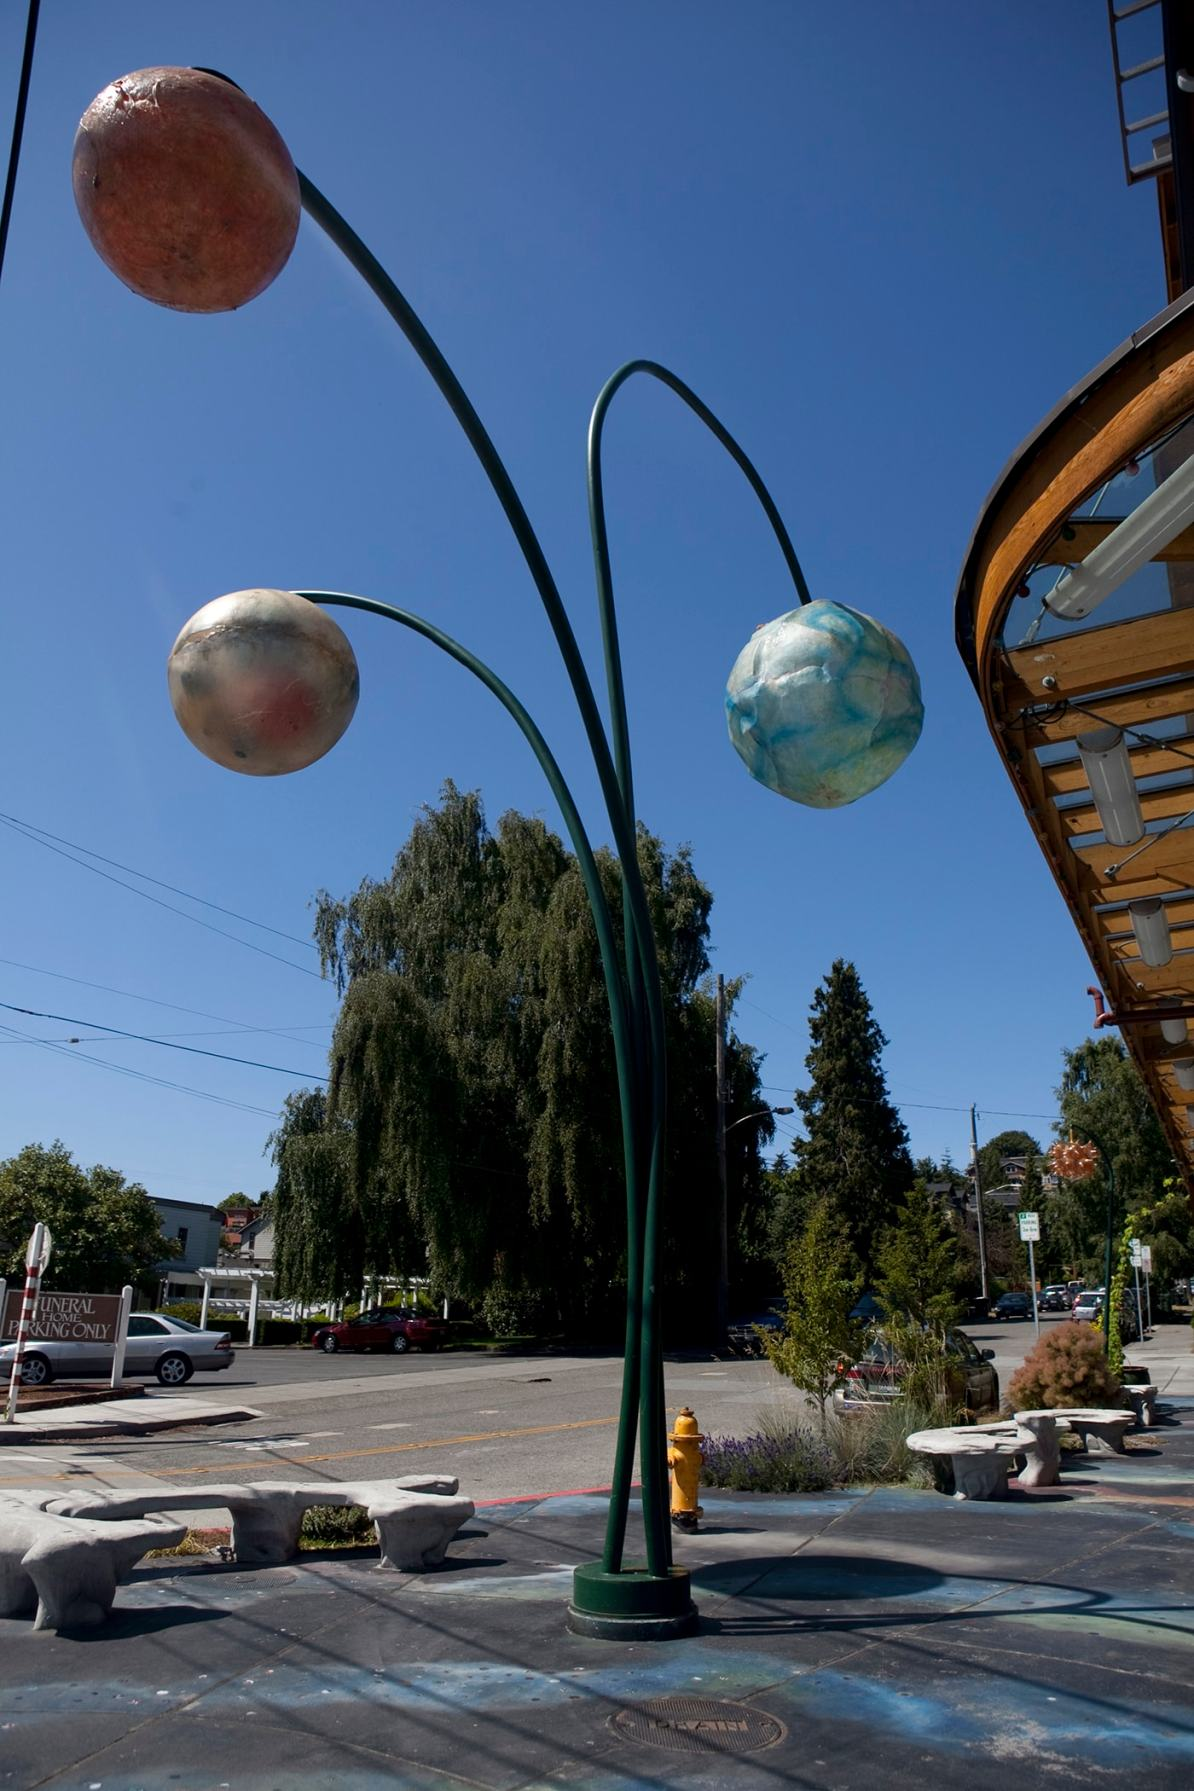 Space sculpture in the Fremont neighborhood of Seattle, Washington.